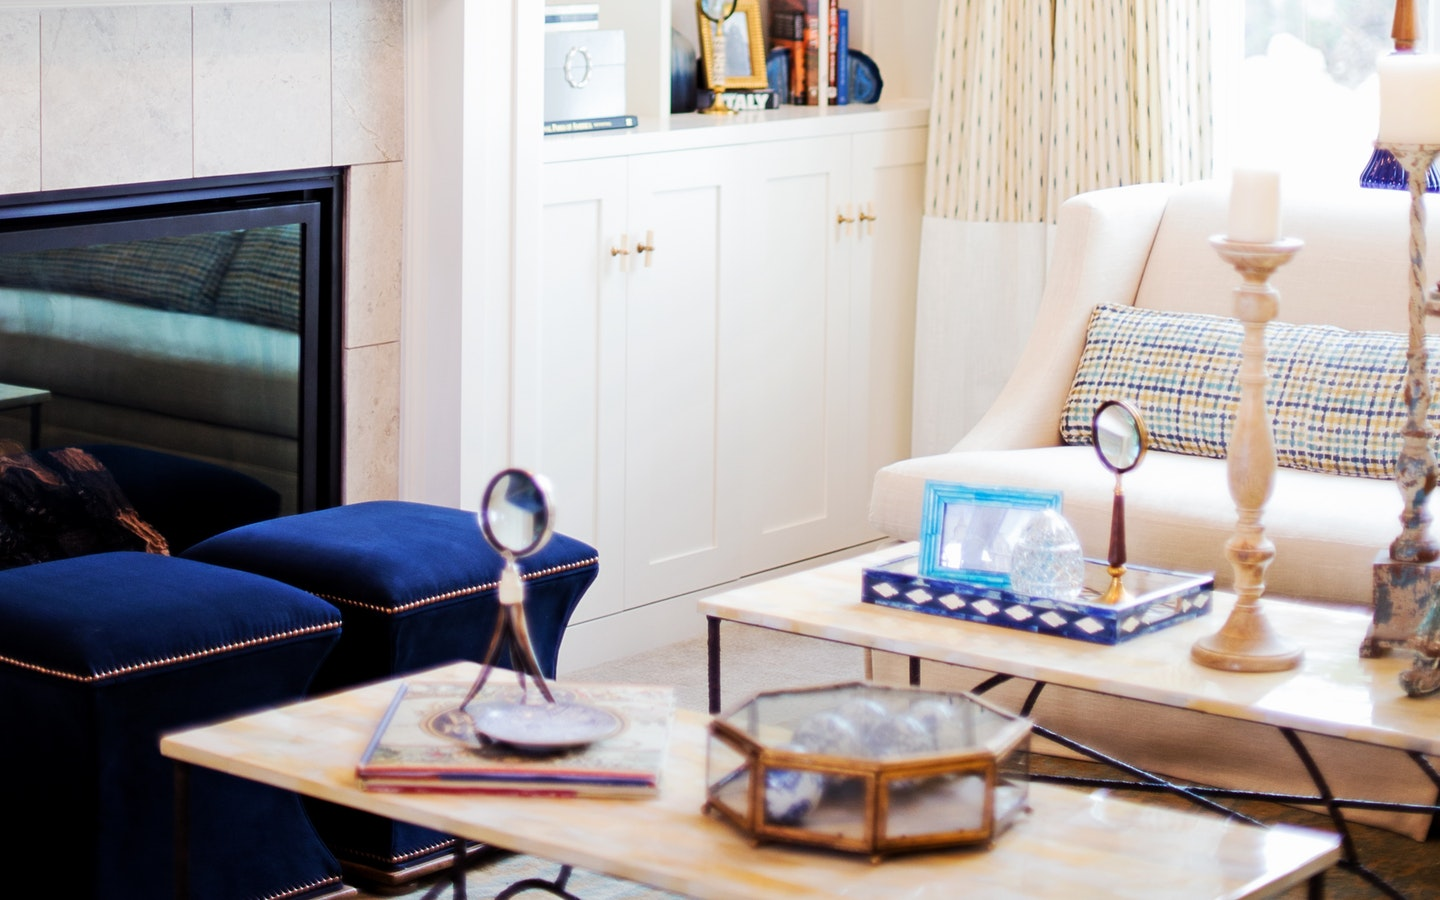 Feng shui your room according to its functionality